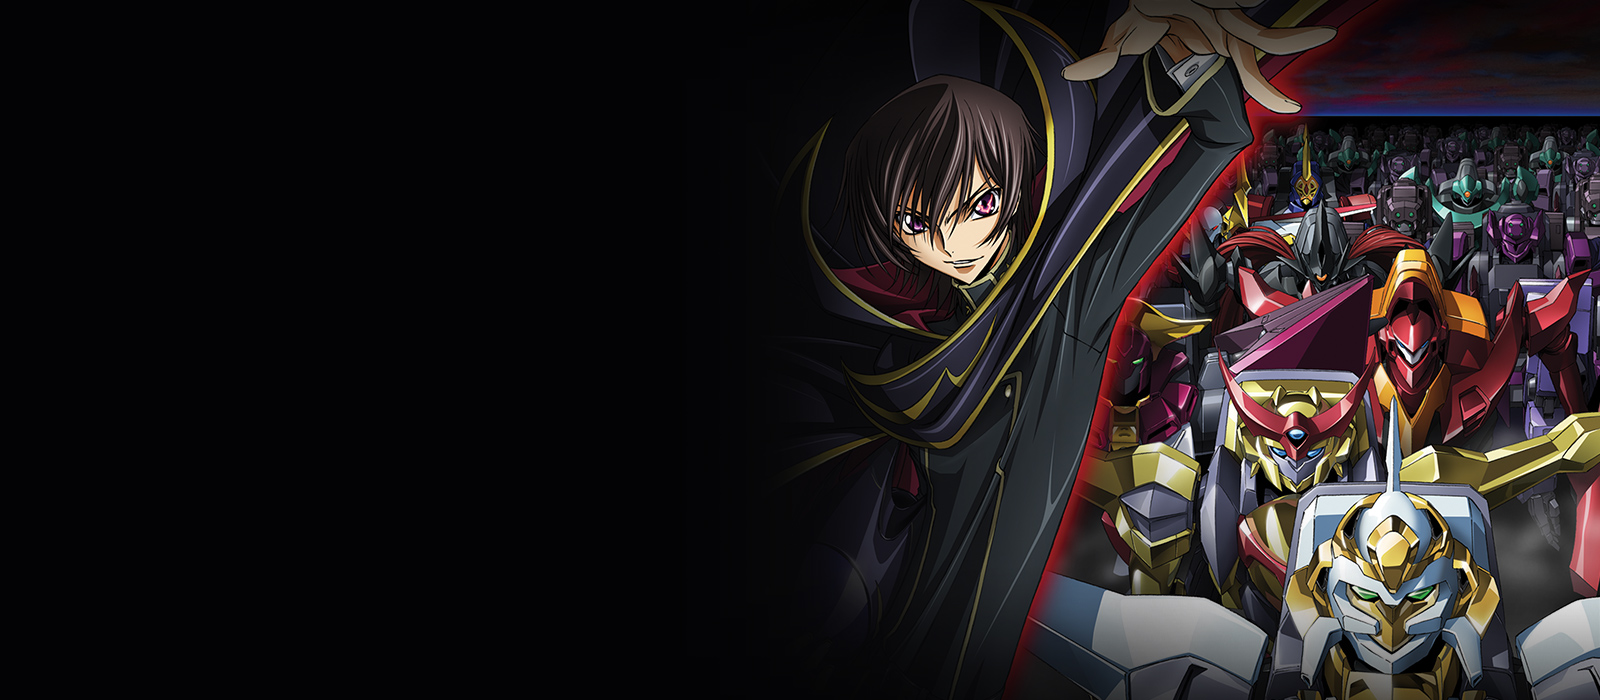 Watch Code Geass Episodes Sub & Dub | Action/Adventure, Sci Fi Anime